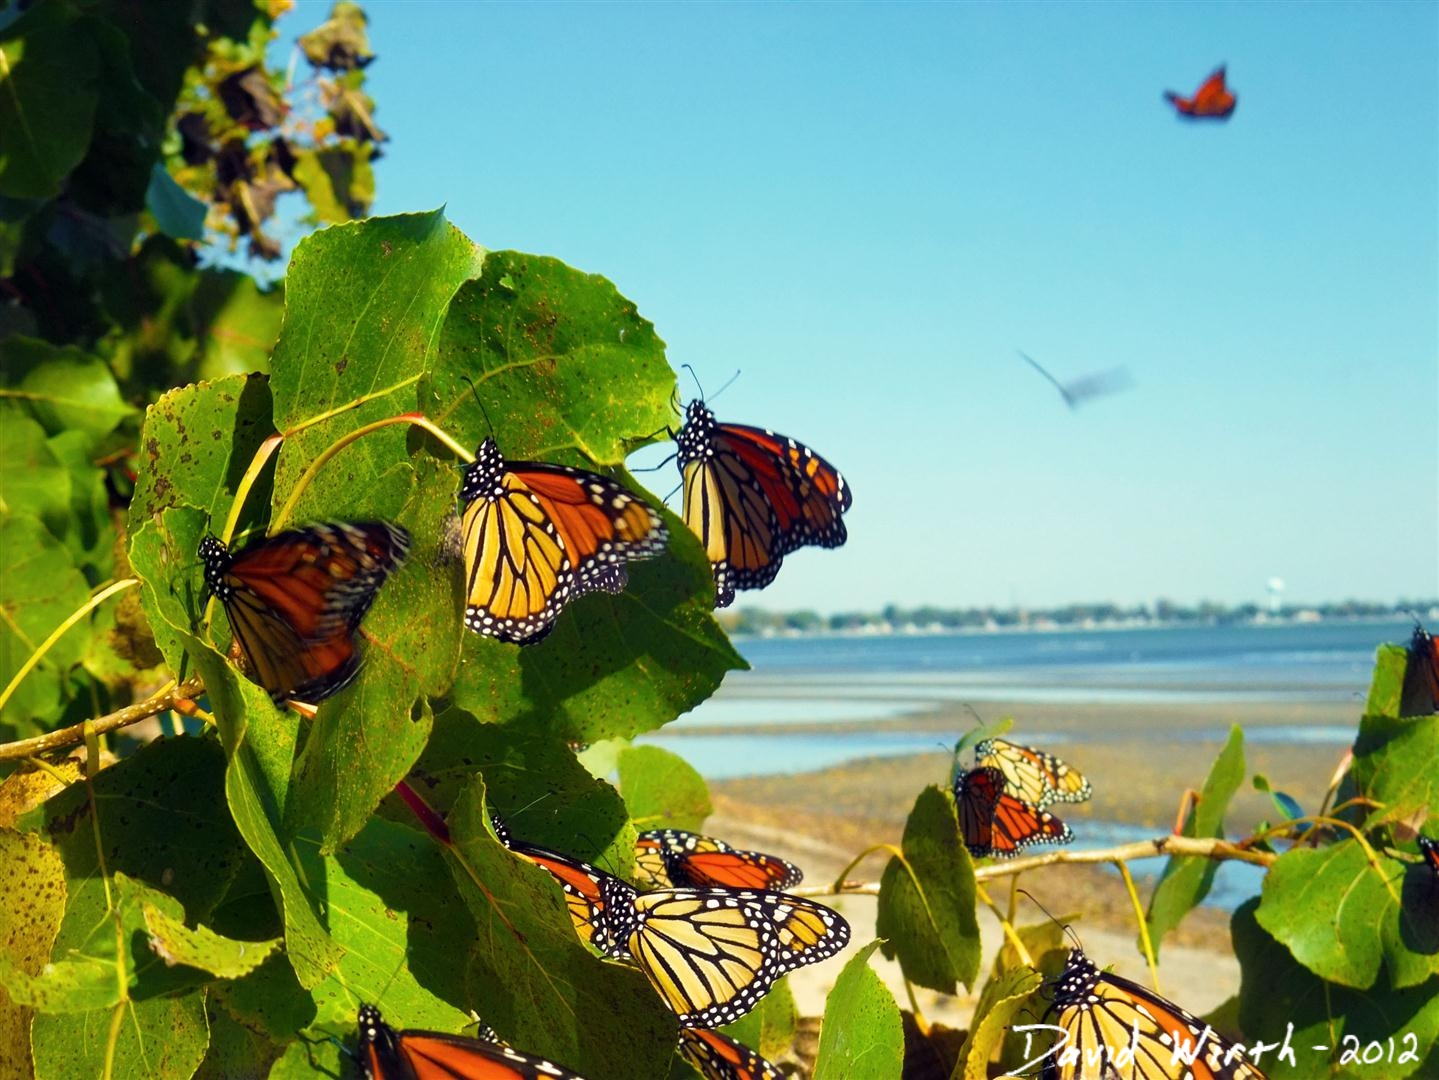 monarch butterfly migration, michigan, canada, mexico, thousands